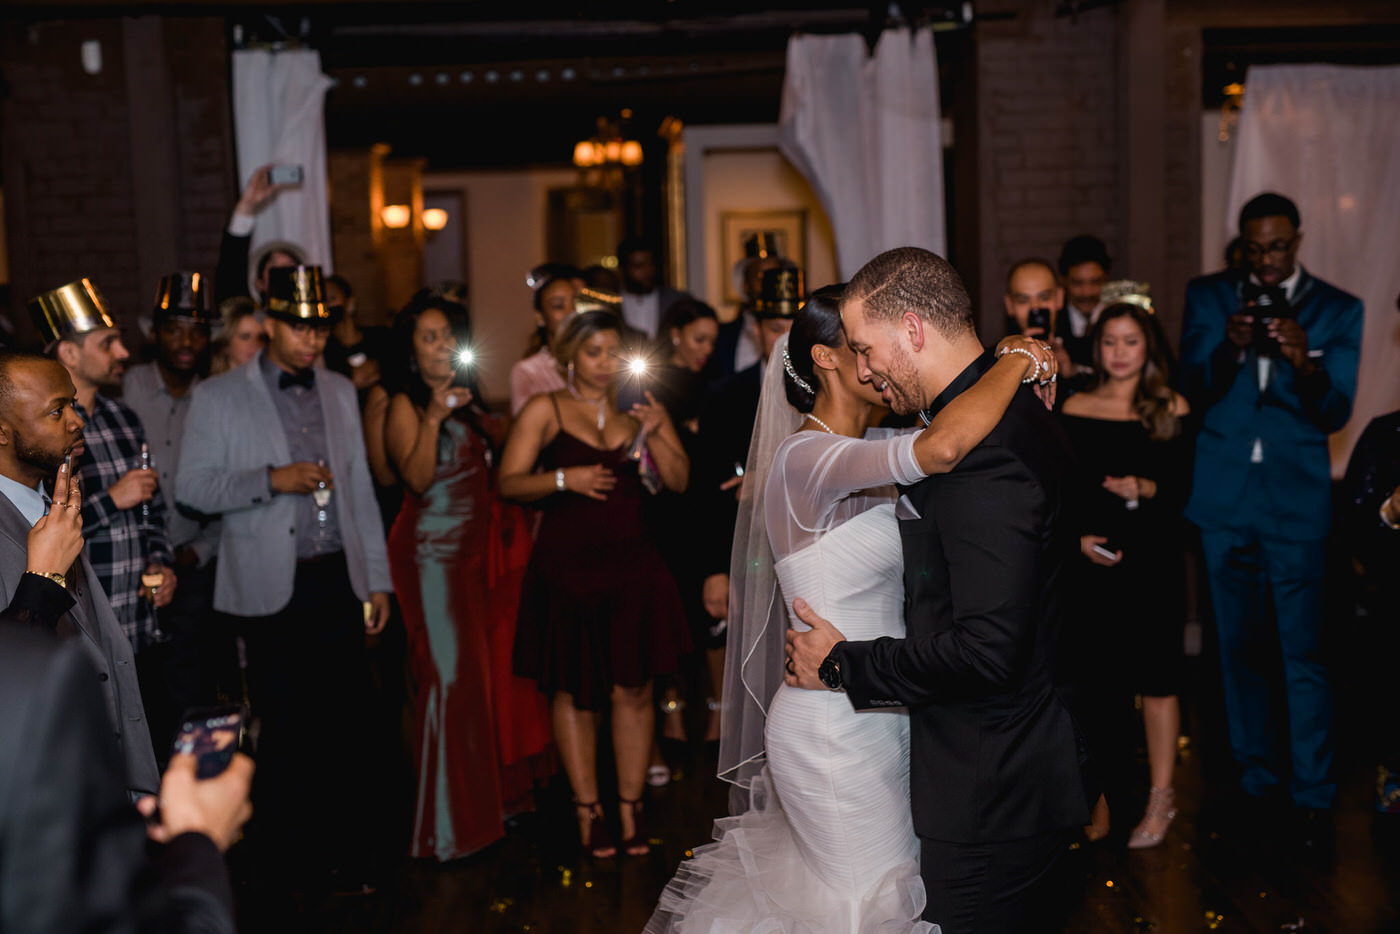 First dance Snapful Photography -New Years Eve Wedding - Toronto-378.jpg Snapful Photography -New Years Eve Wedding - Toronto-379.jpg